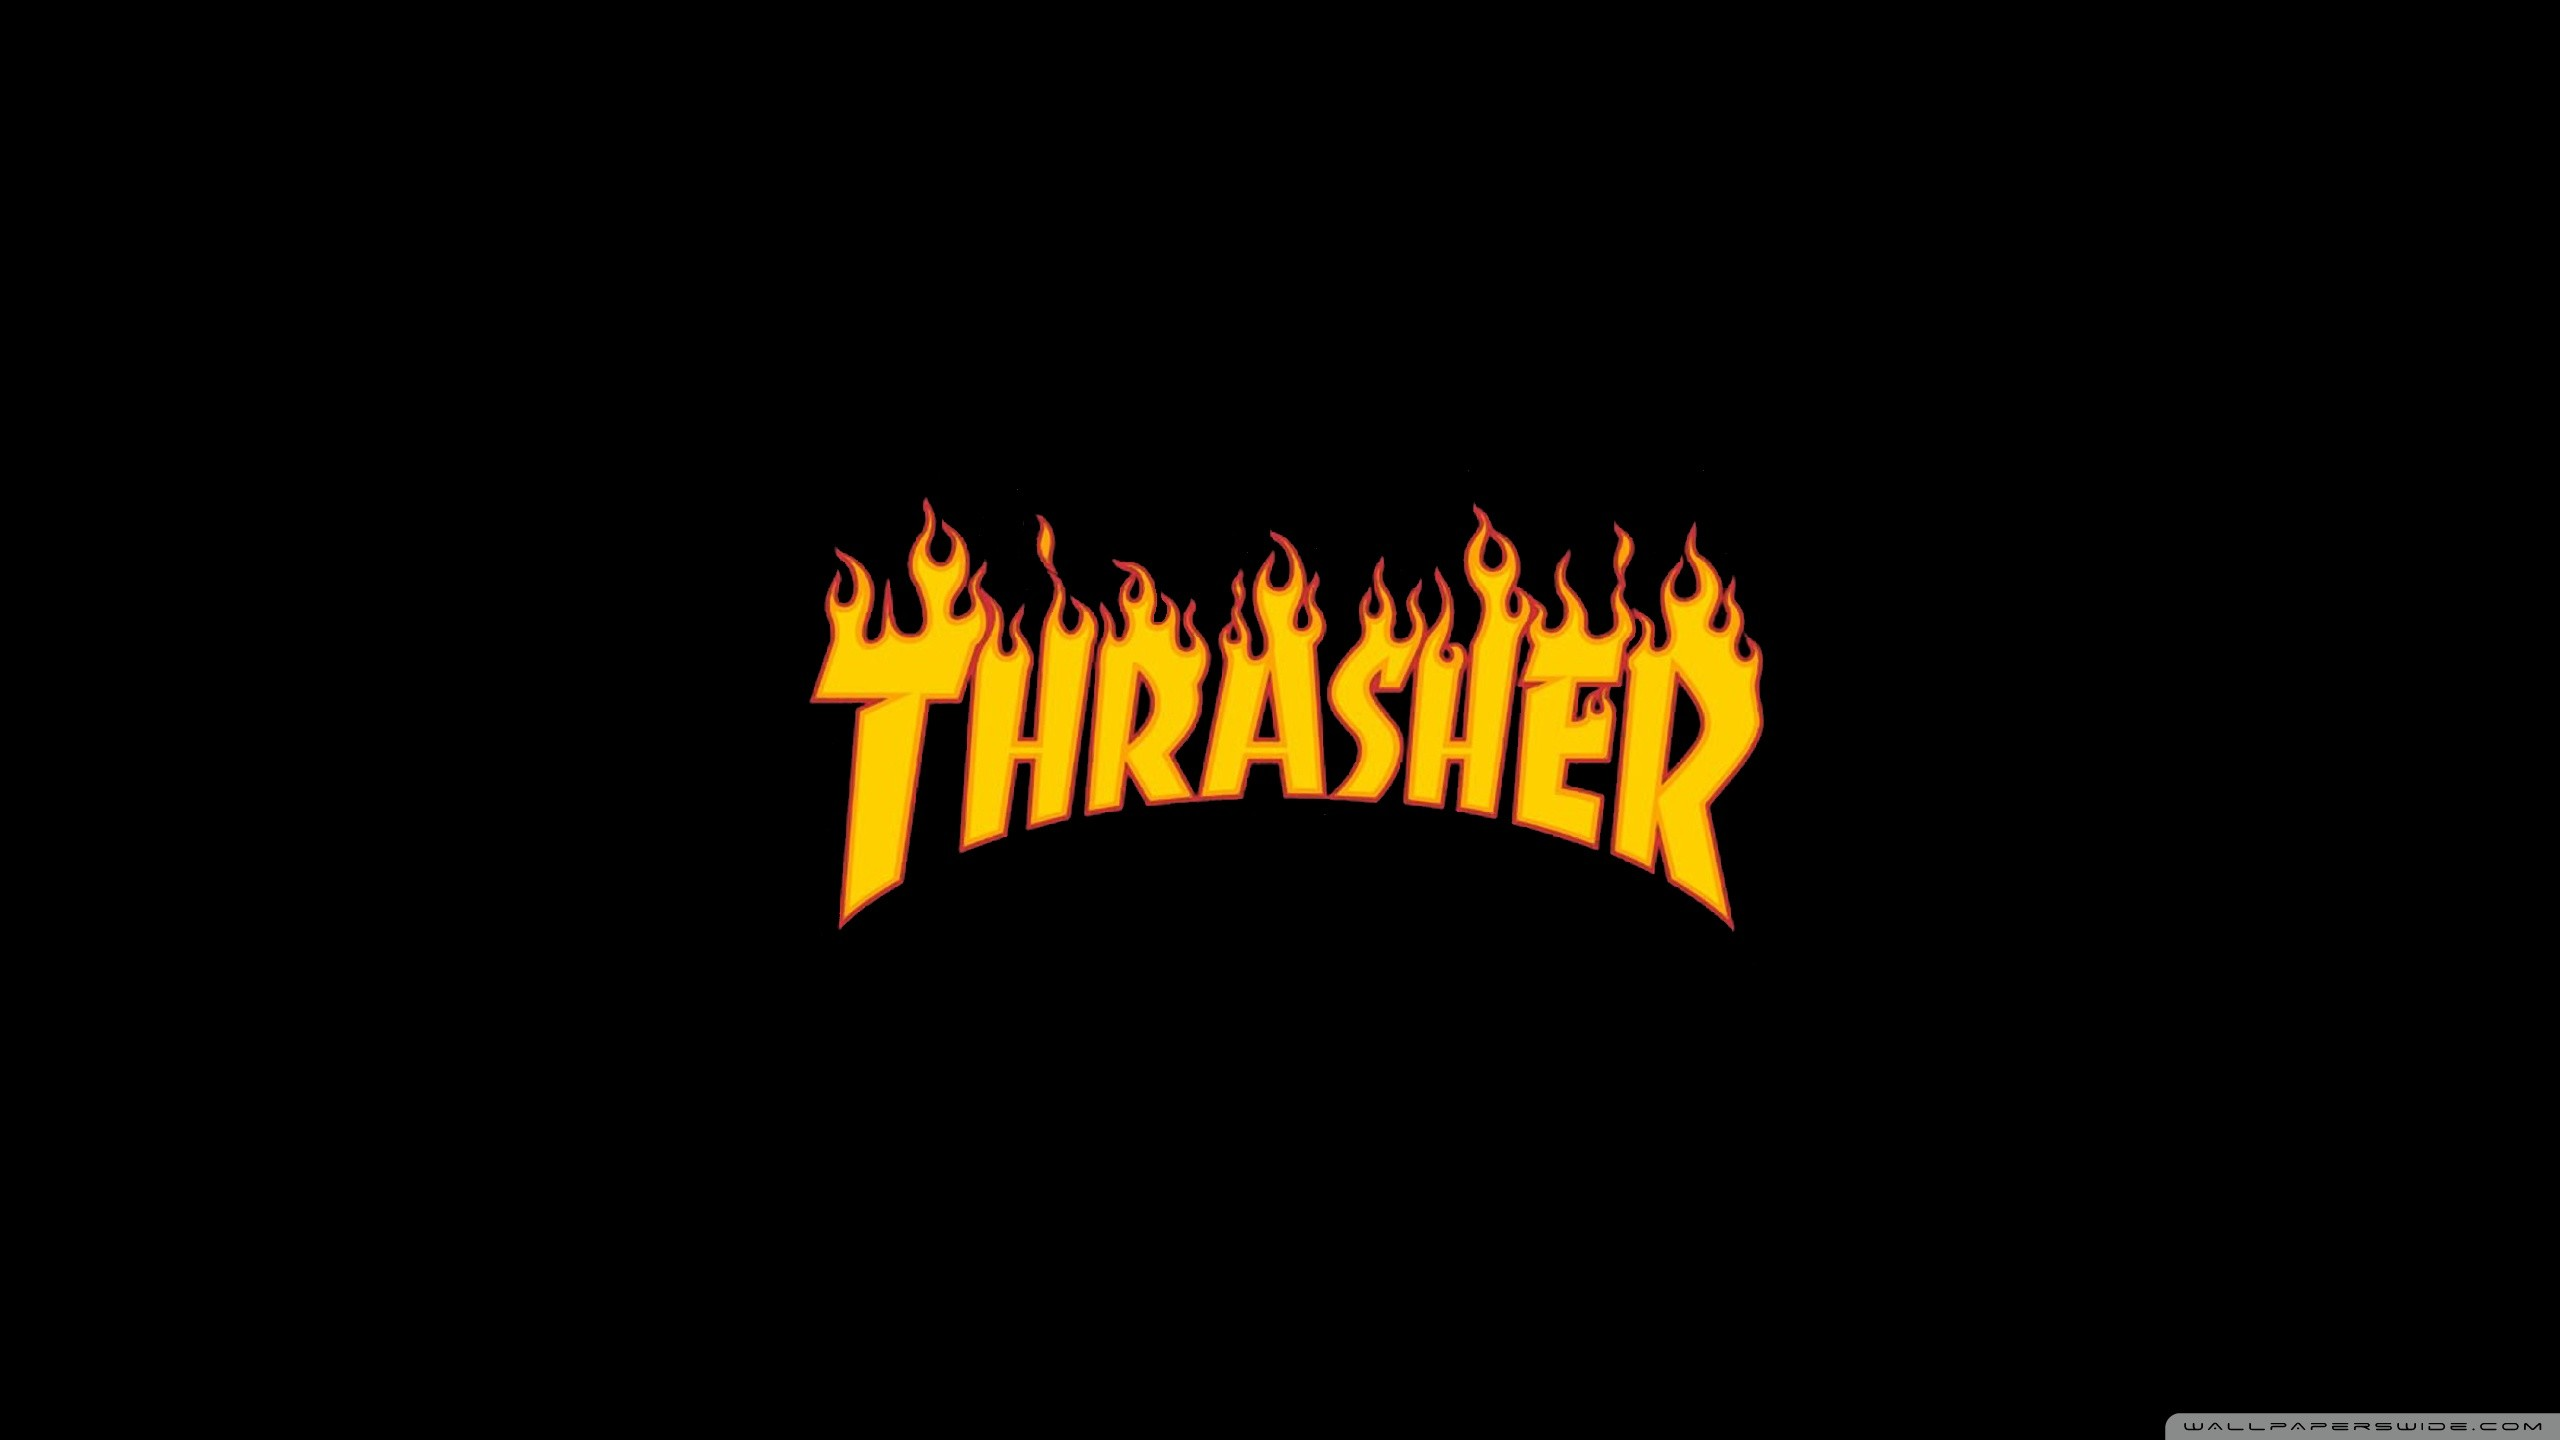 Res: 2560x1440, HD Thrasher Wallpaper, View: 230275657 HD Thrasher Wallpaper, M.F.  Wallpapers